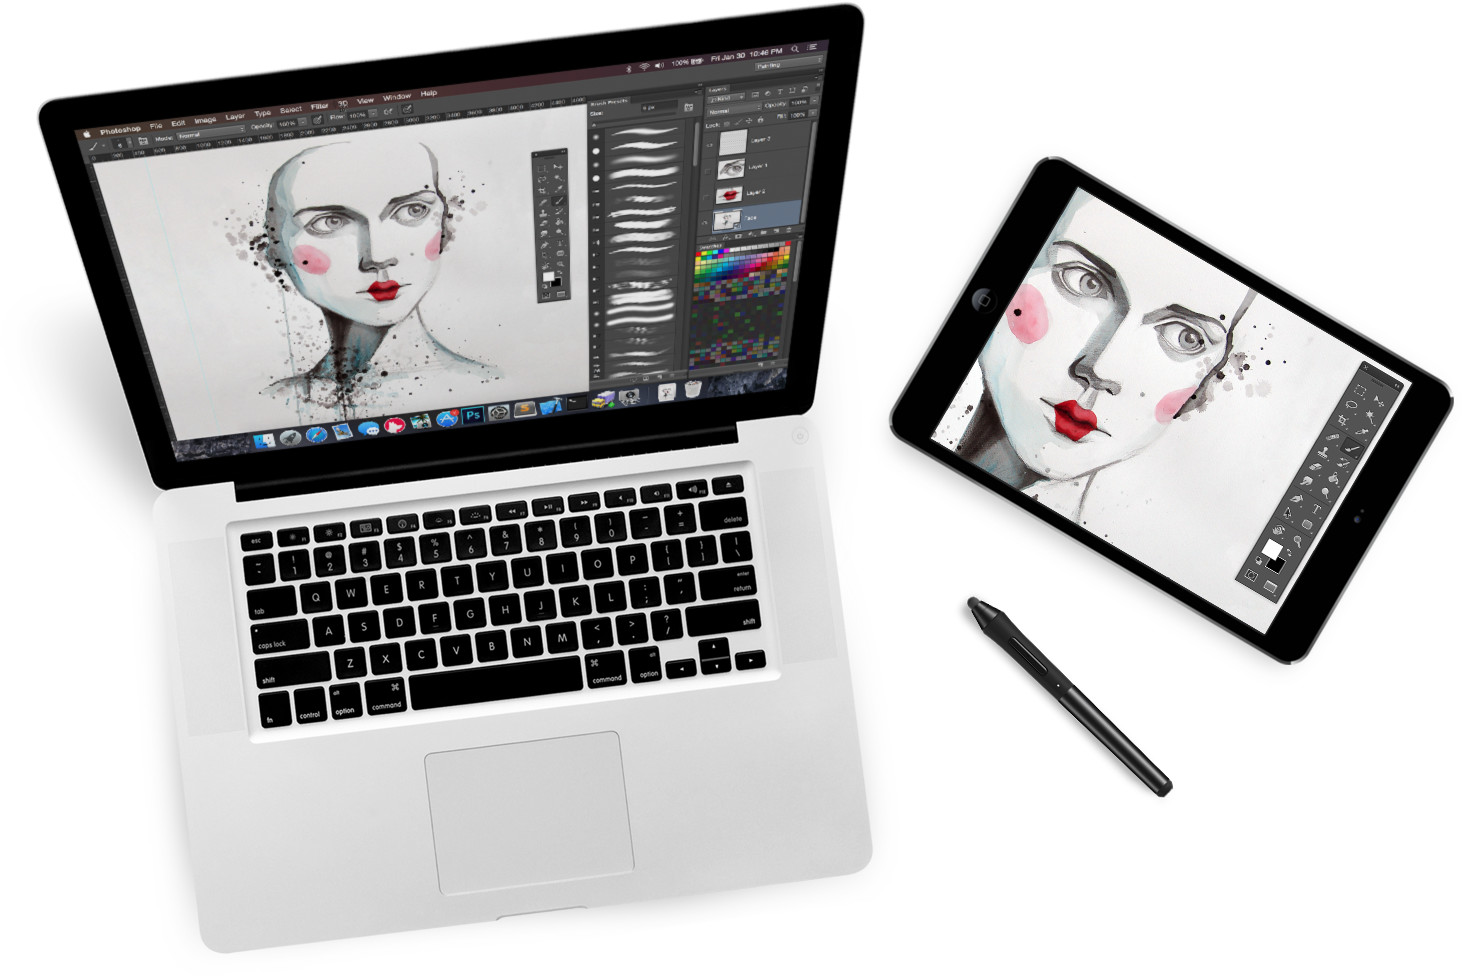 Astropad - Transform your iPad into a professional graphics tablet - @mwender